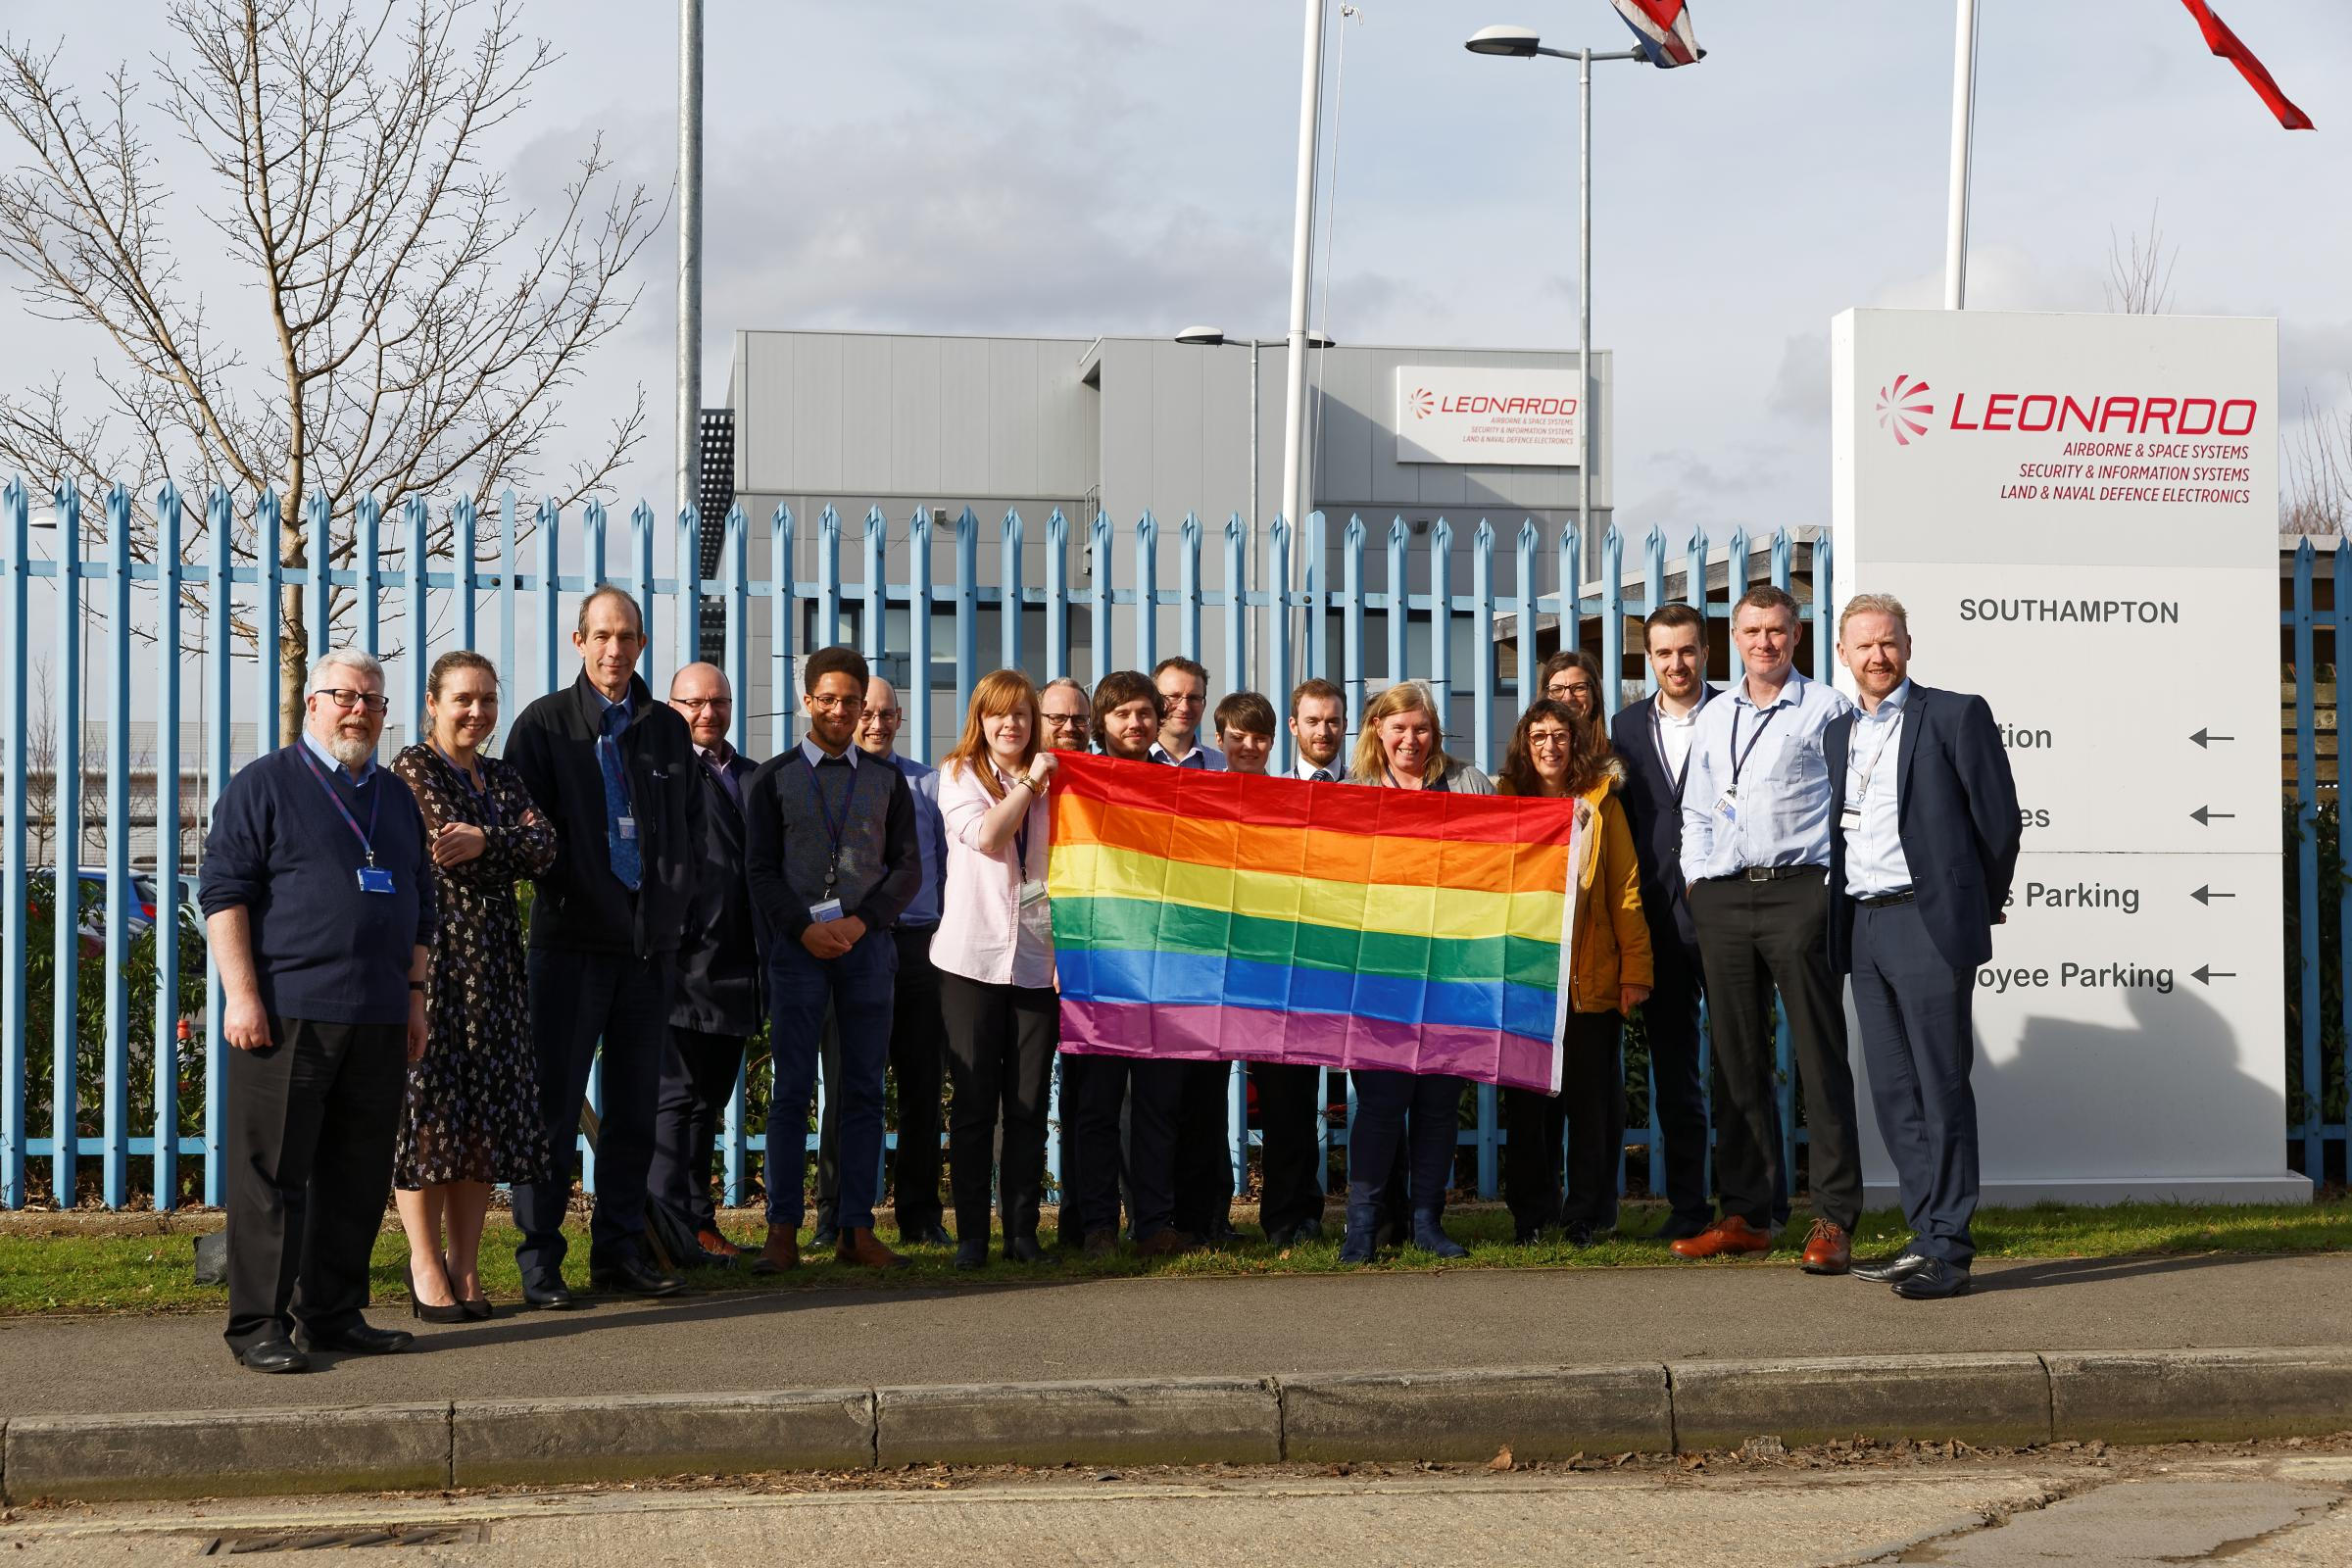 Leonardo staff with the LGBT flag outside their Southampton site